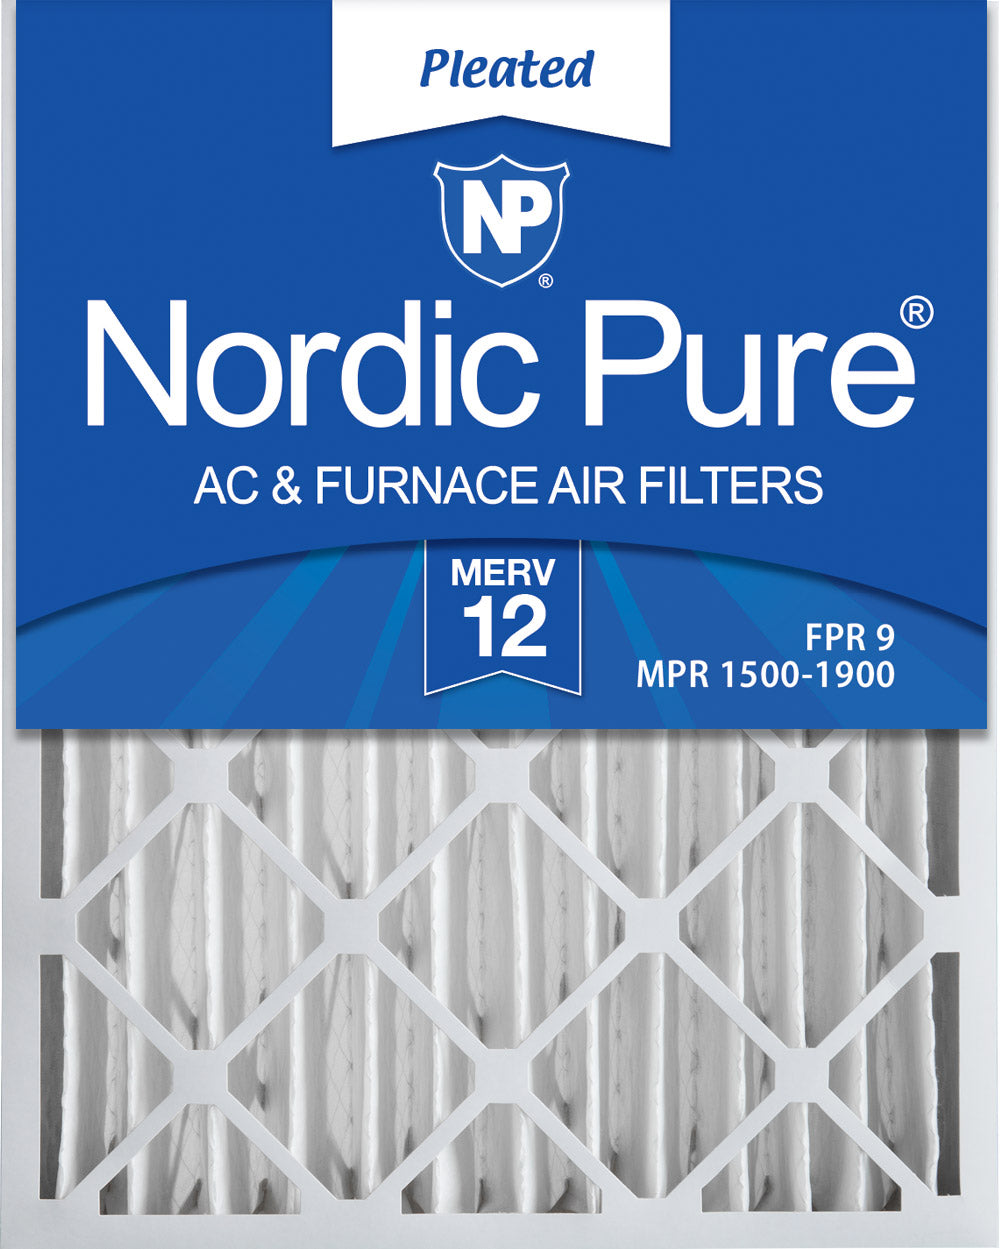 20x25x4 (3 5/8) Pleated MERV 12 Air Filters 6 Pack